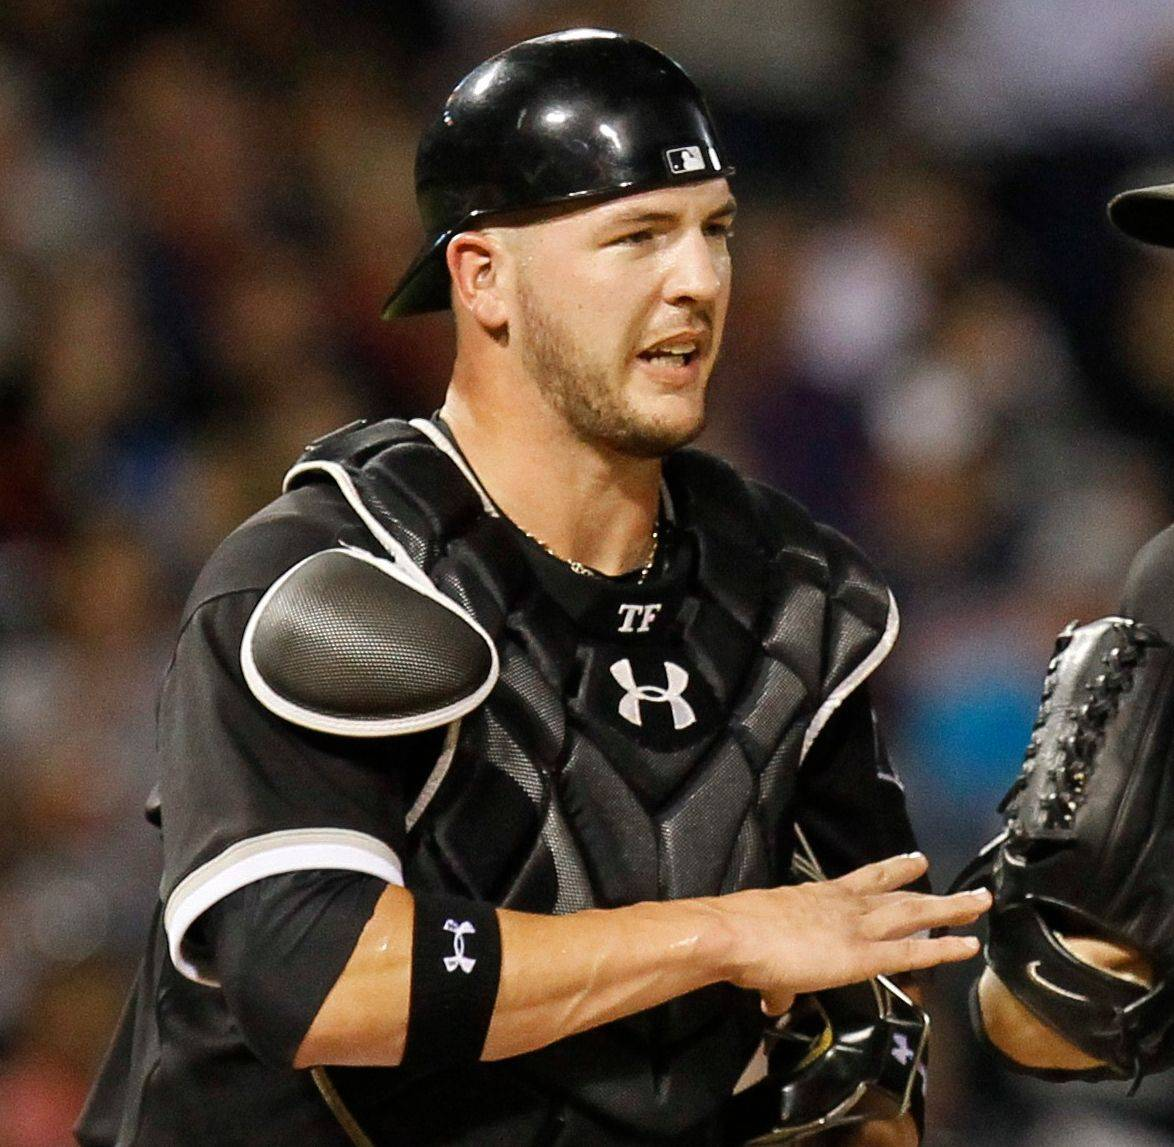 Tyler Flowers, above, is the heir apparent to veteran White Sox catcher A.J. Pierzynski